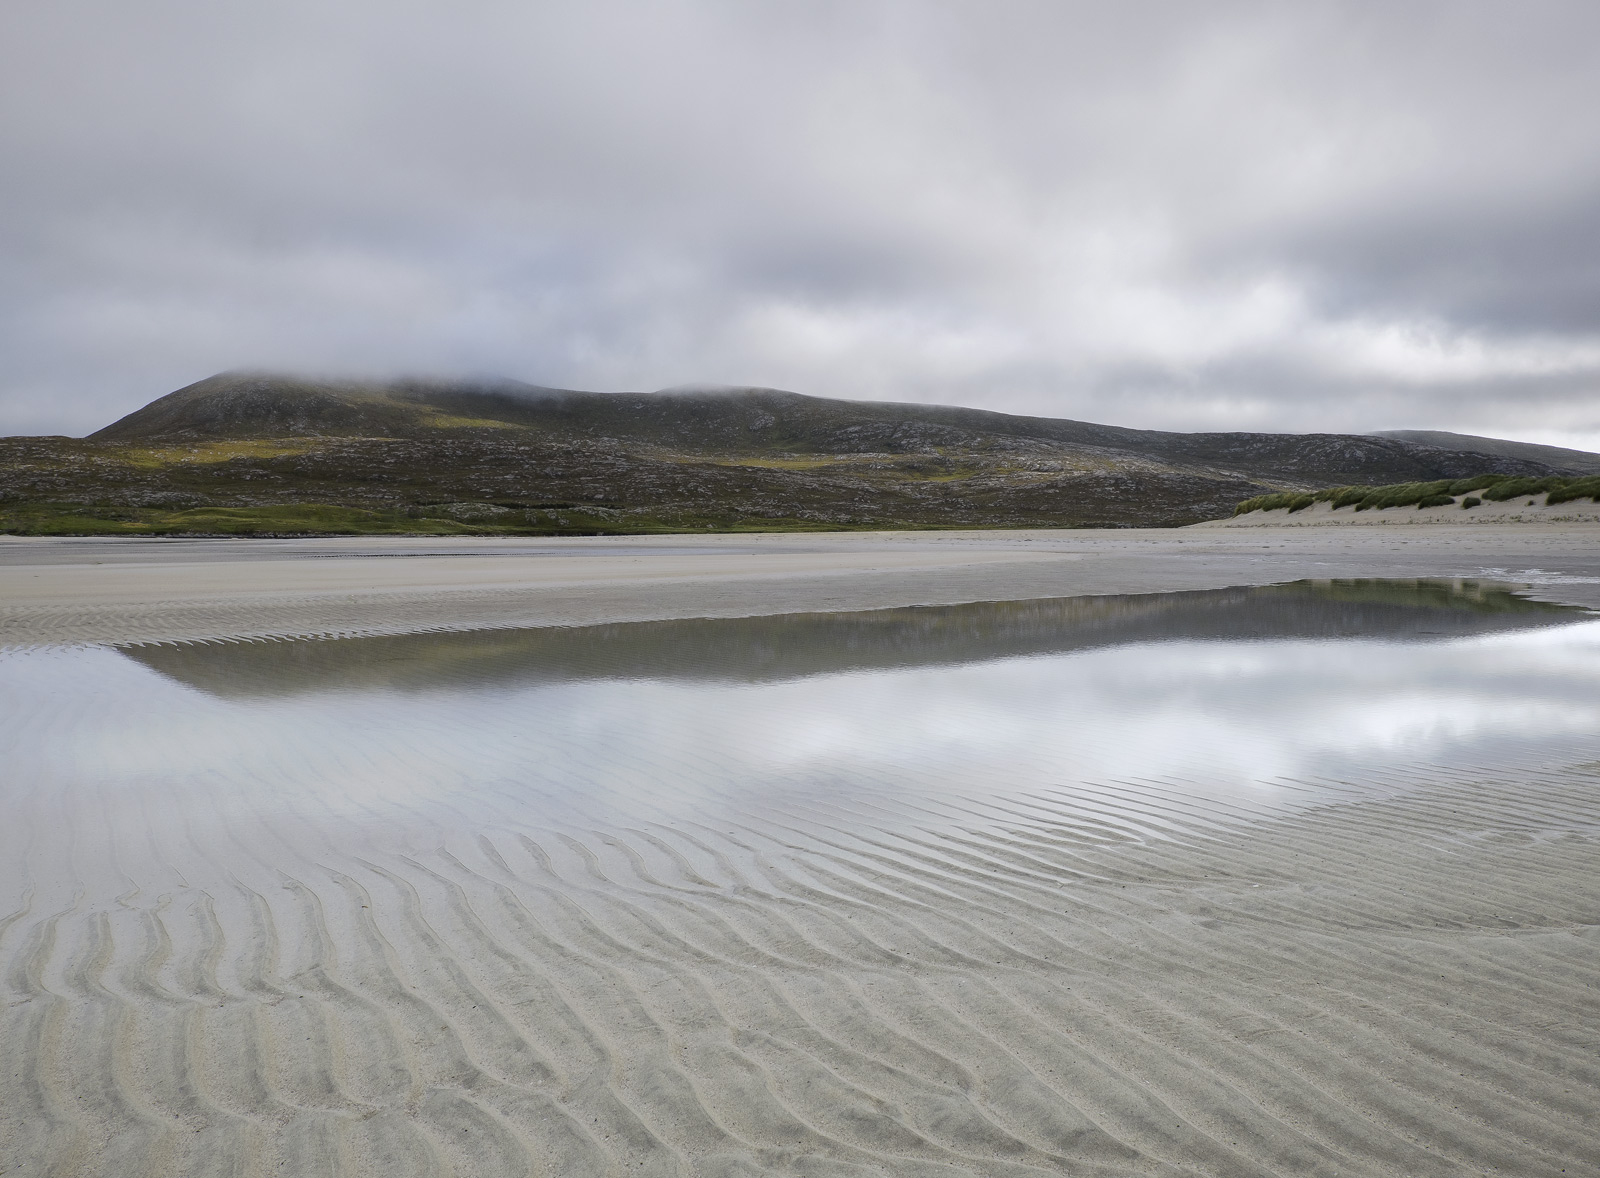 Etched sand patterns and a reflected spit of land across from Seilebost beach on Harris produce a gentle lilting landsacpe of...